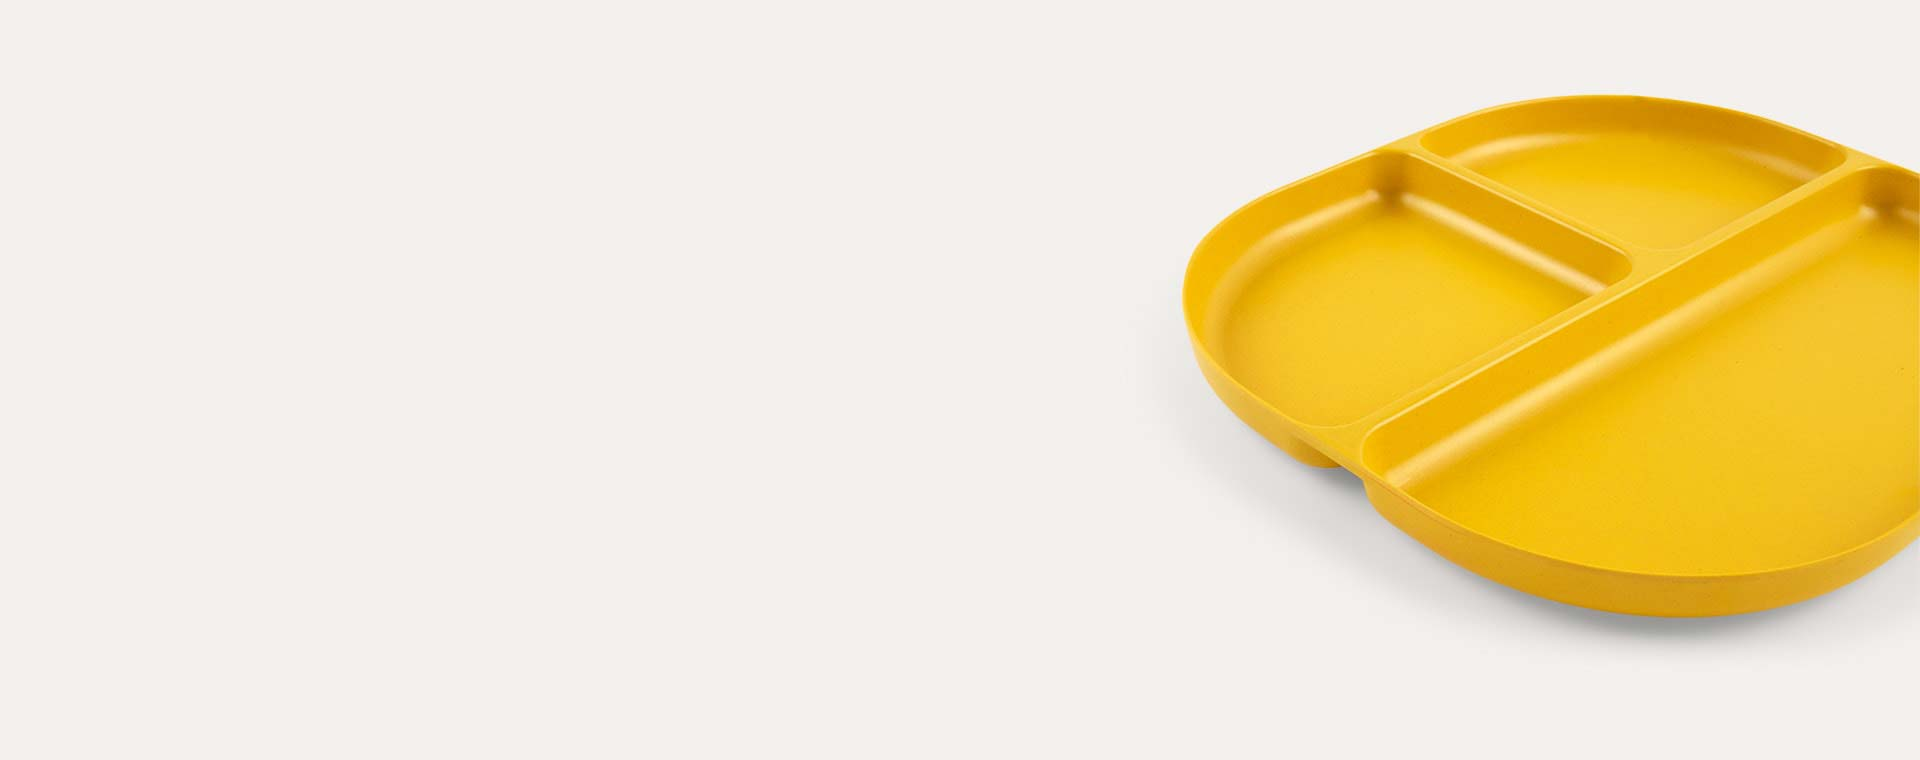 Lemon EKOBO Divided Plate